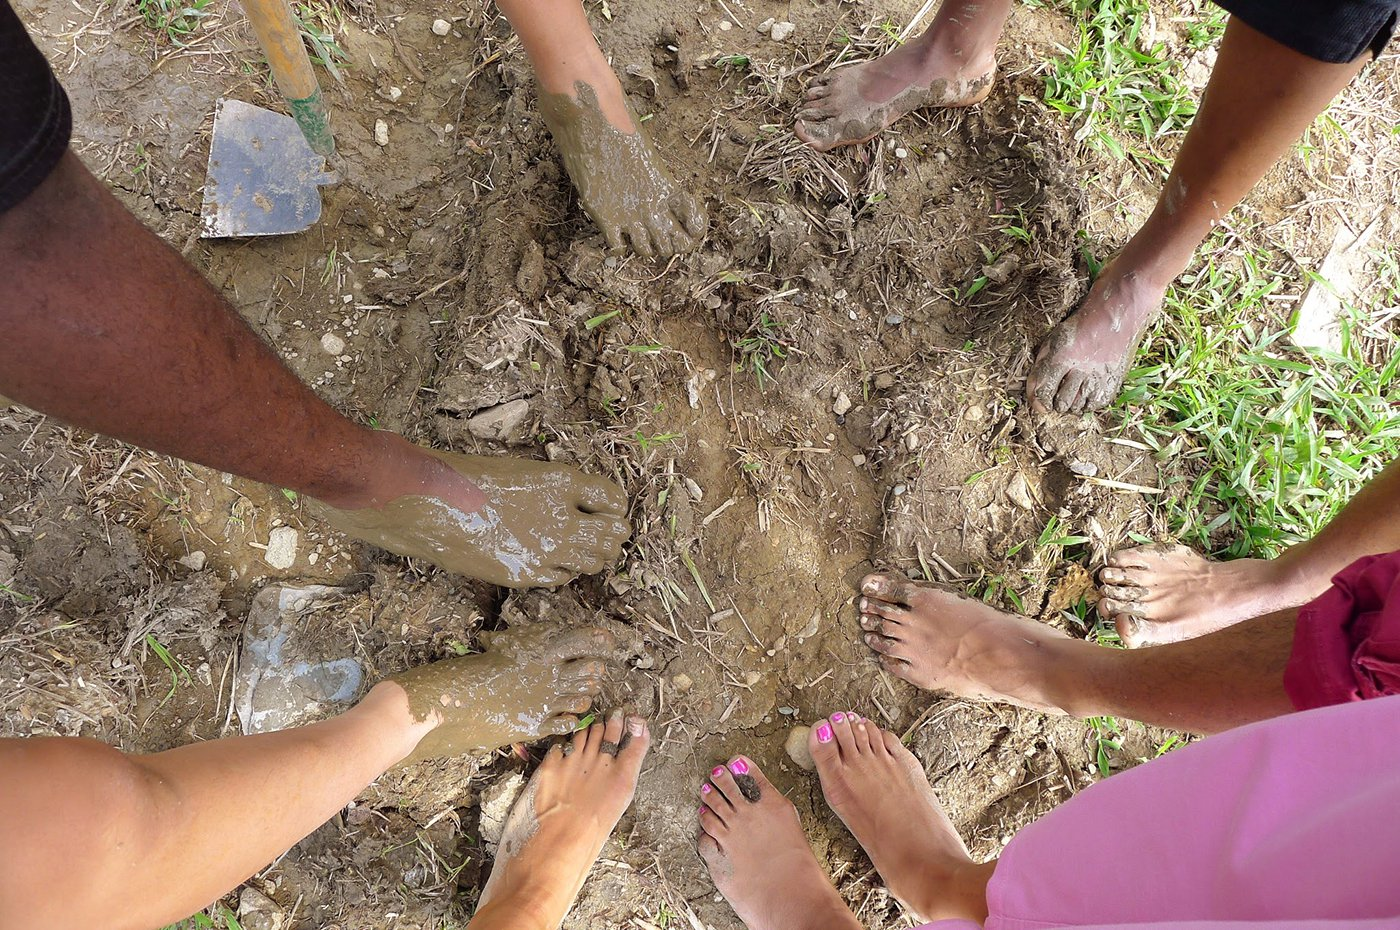 Teen participants take their shoes off to experience the mud on their feet.